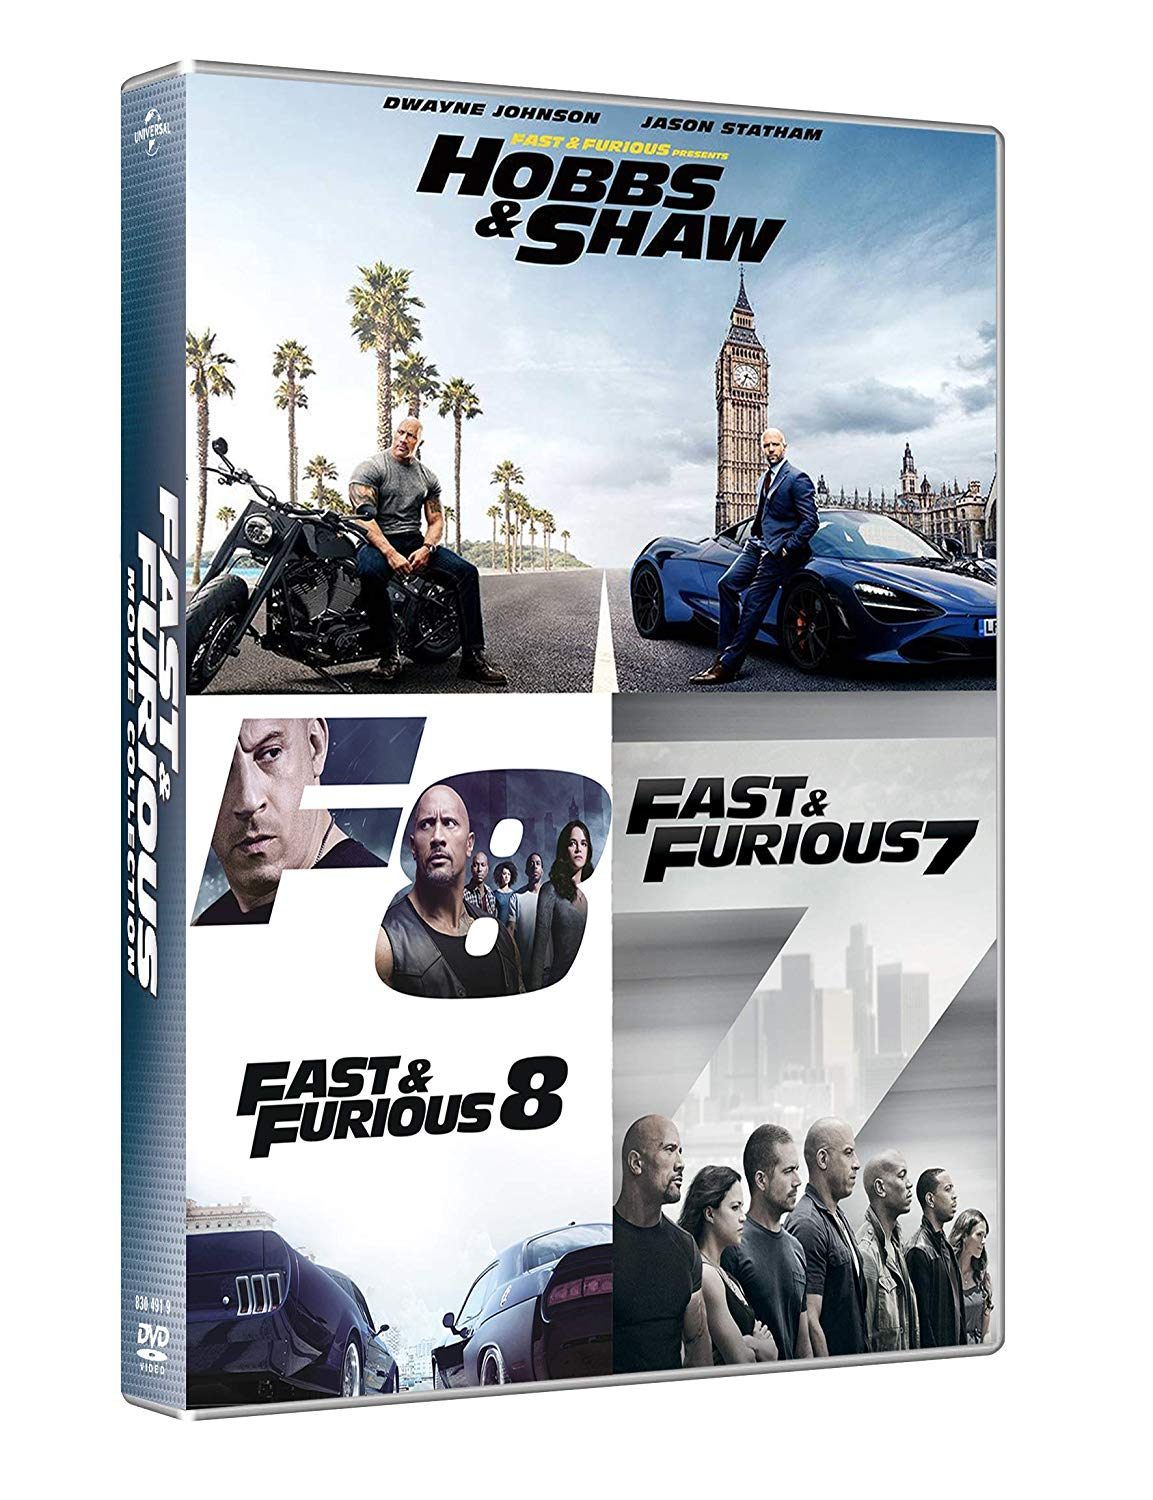 COF.FAST & FURIOUS HOBBS & SHAW COLLECTION (3 DVD) (DVD)